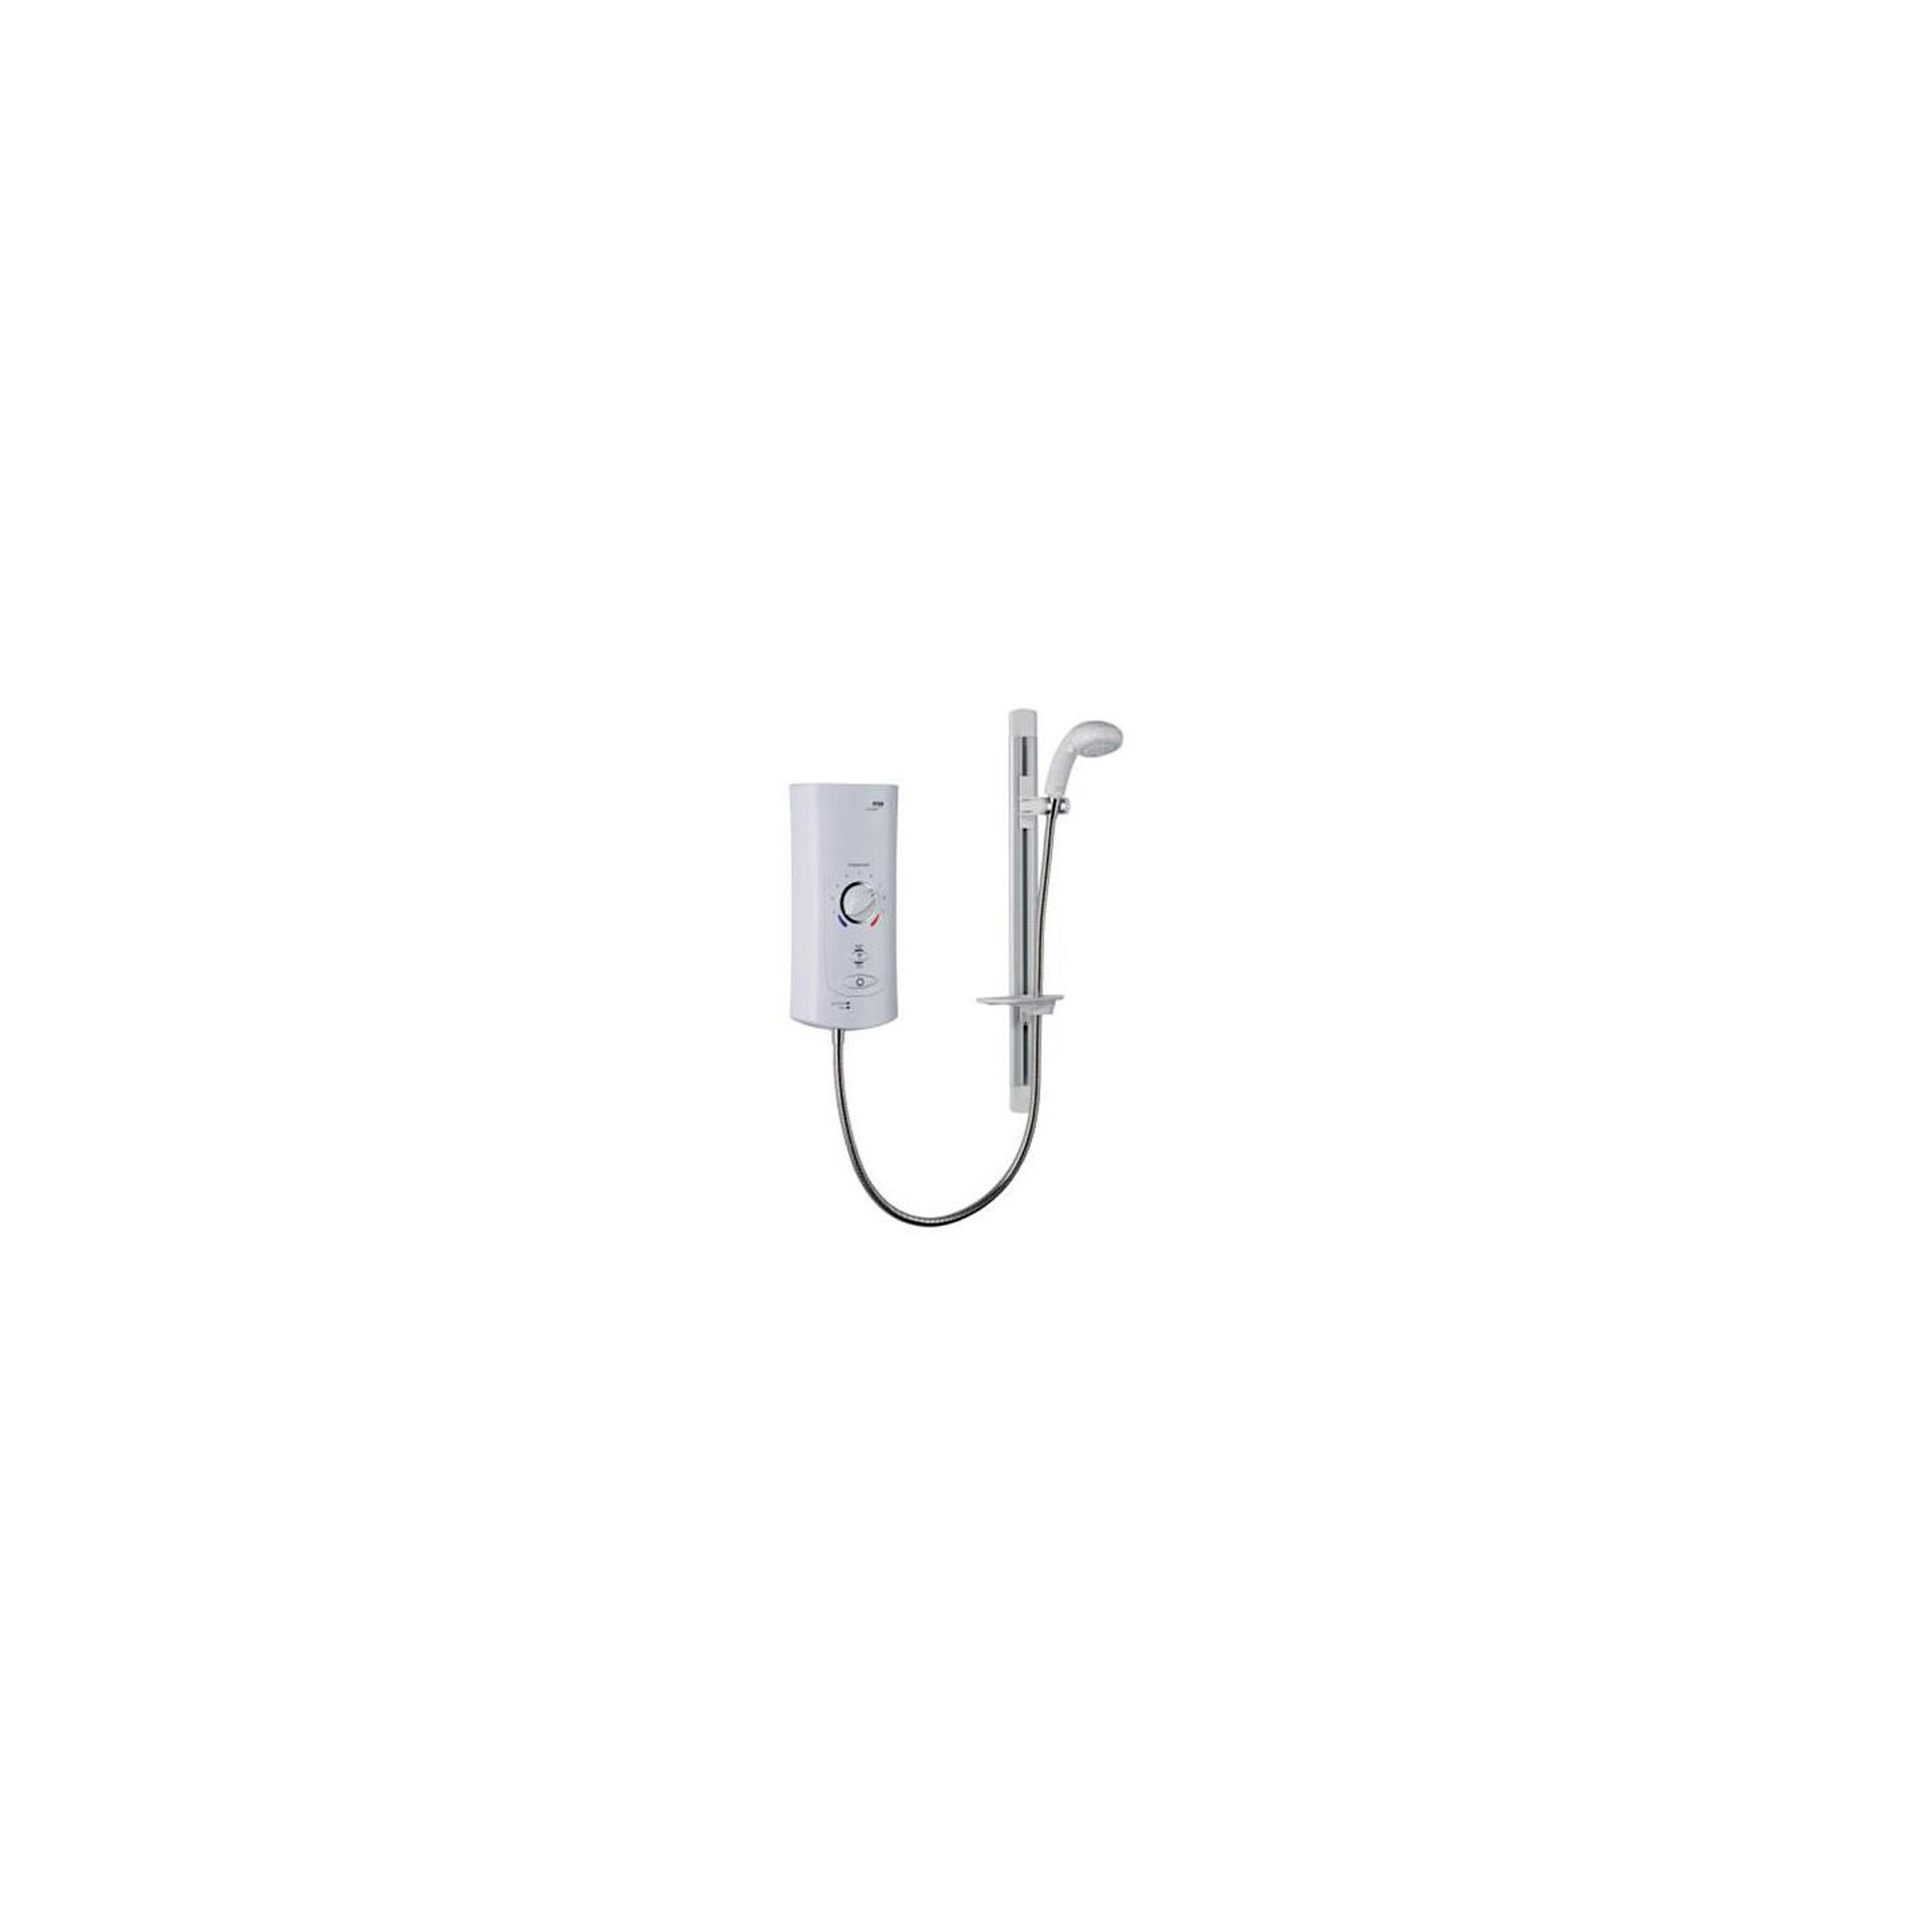 Mira Advance ATL 9.0 kW Electric Shower, 4 Spray Handset, White/Chrome at Tesco Direct